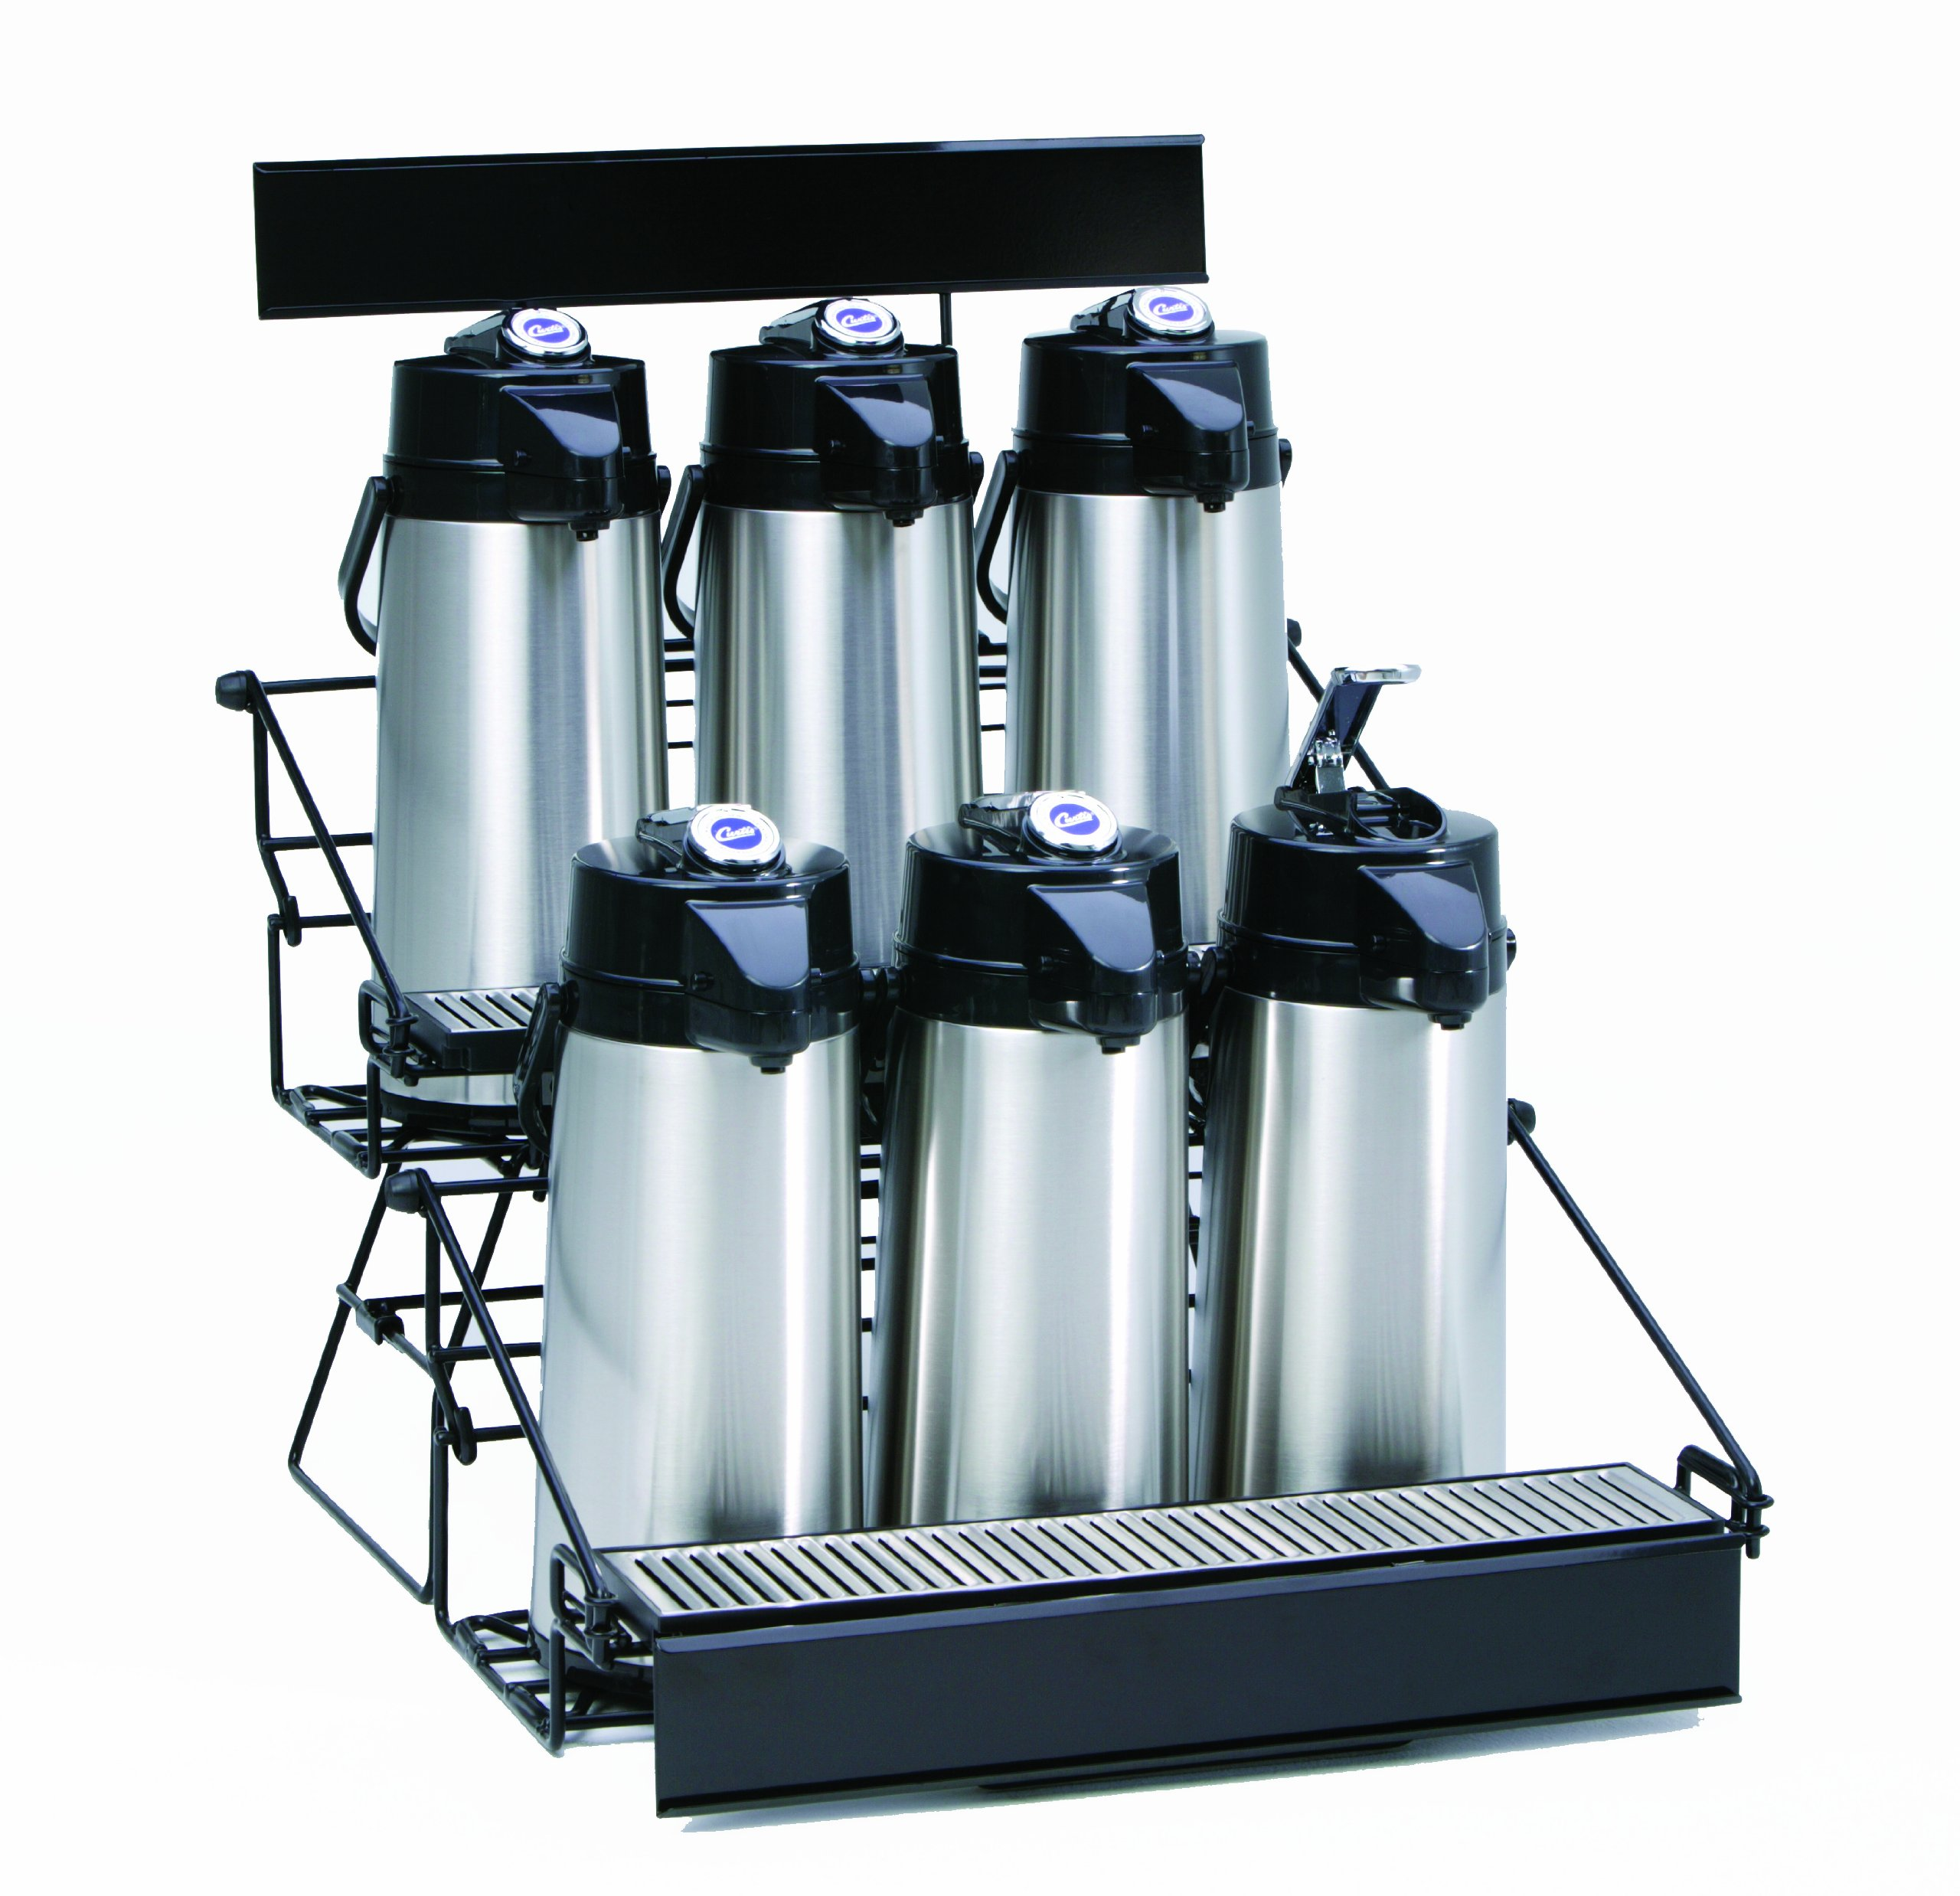 Wilbur Curtis  6 Position Wire Airpot Rack - Compact Design with Integral Drip Tray - WR6B0000 (Each)